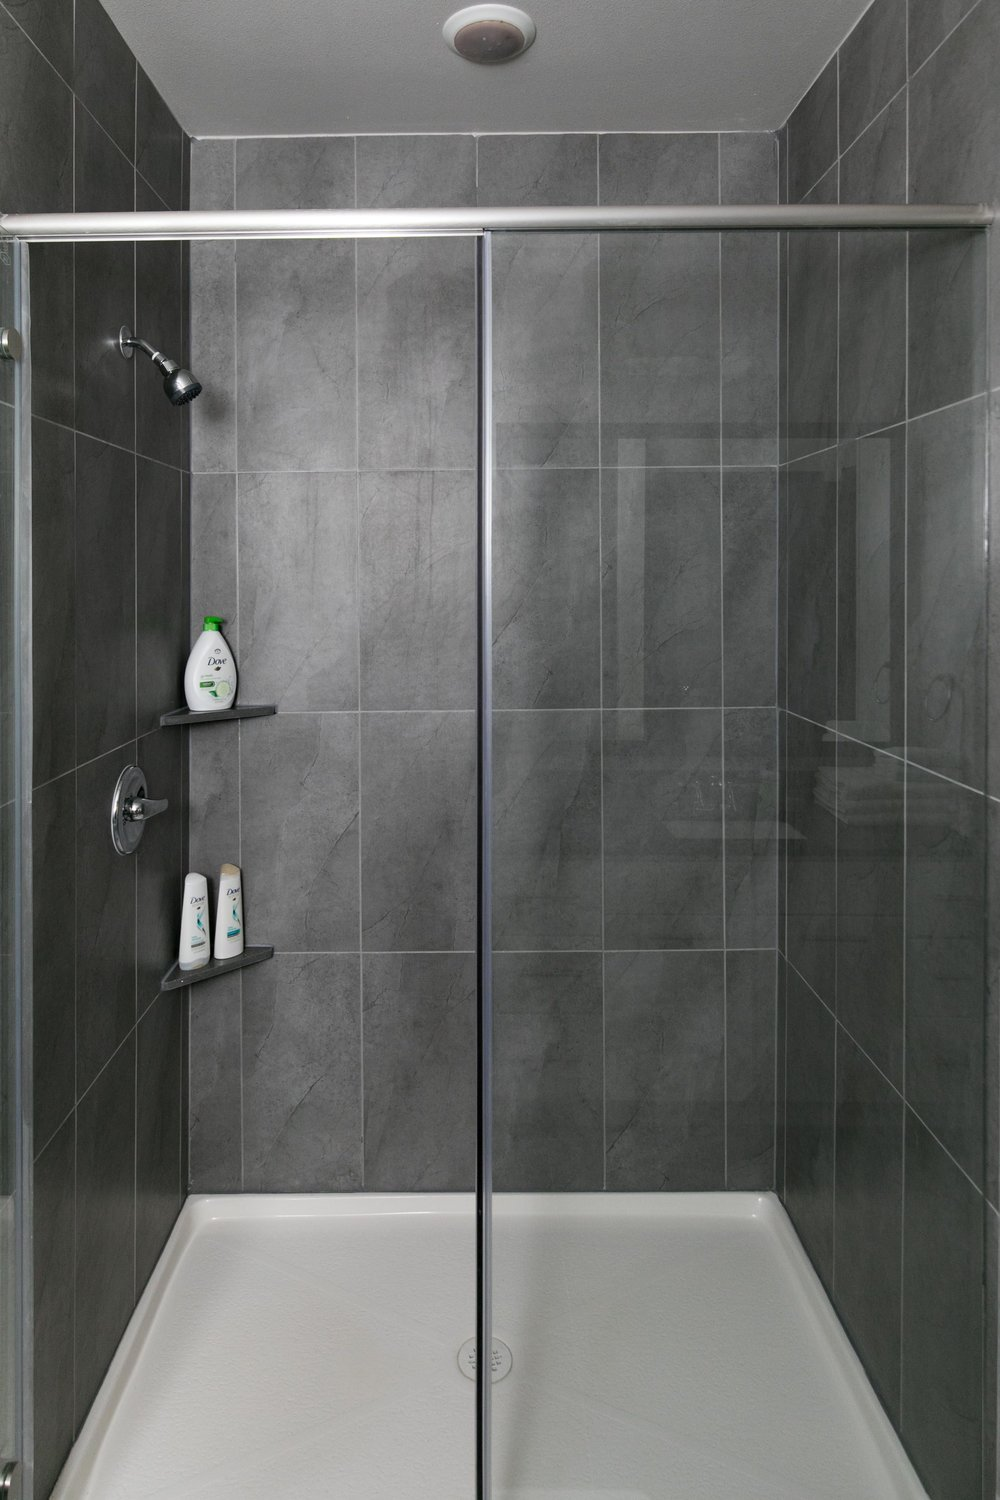 Locale East Austin - Walk-in Shower with Amenities